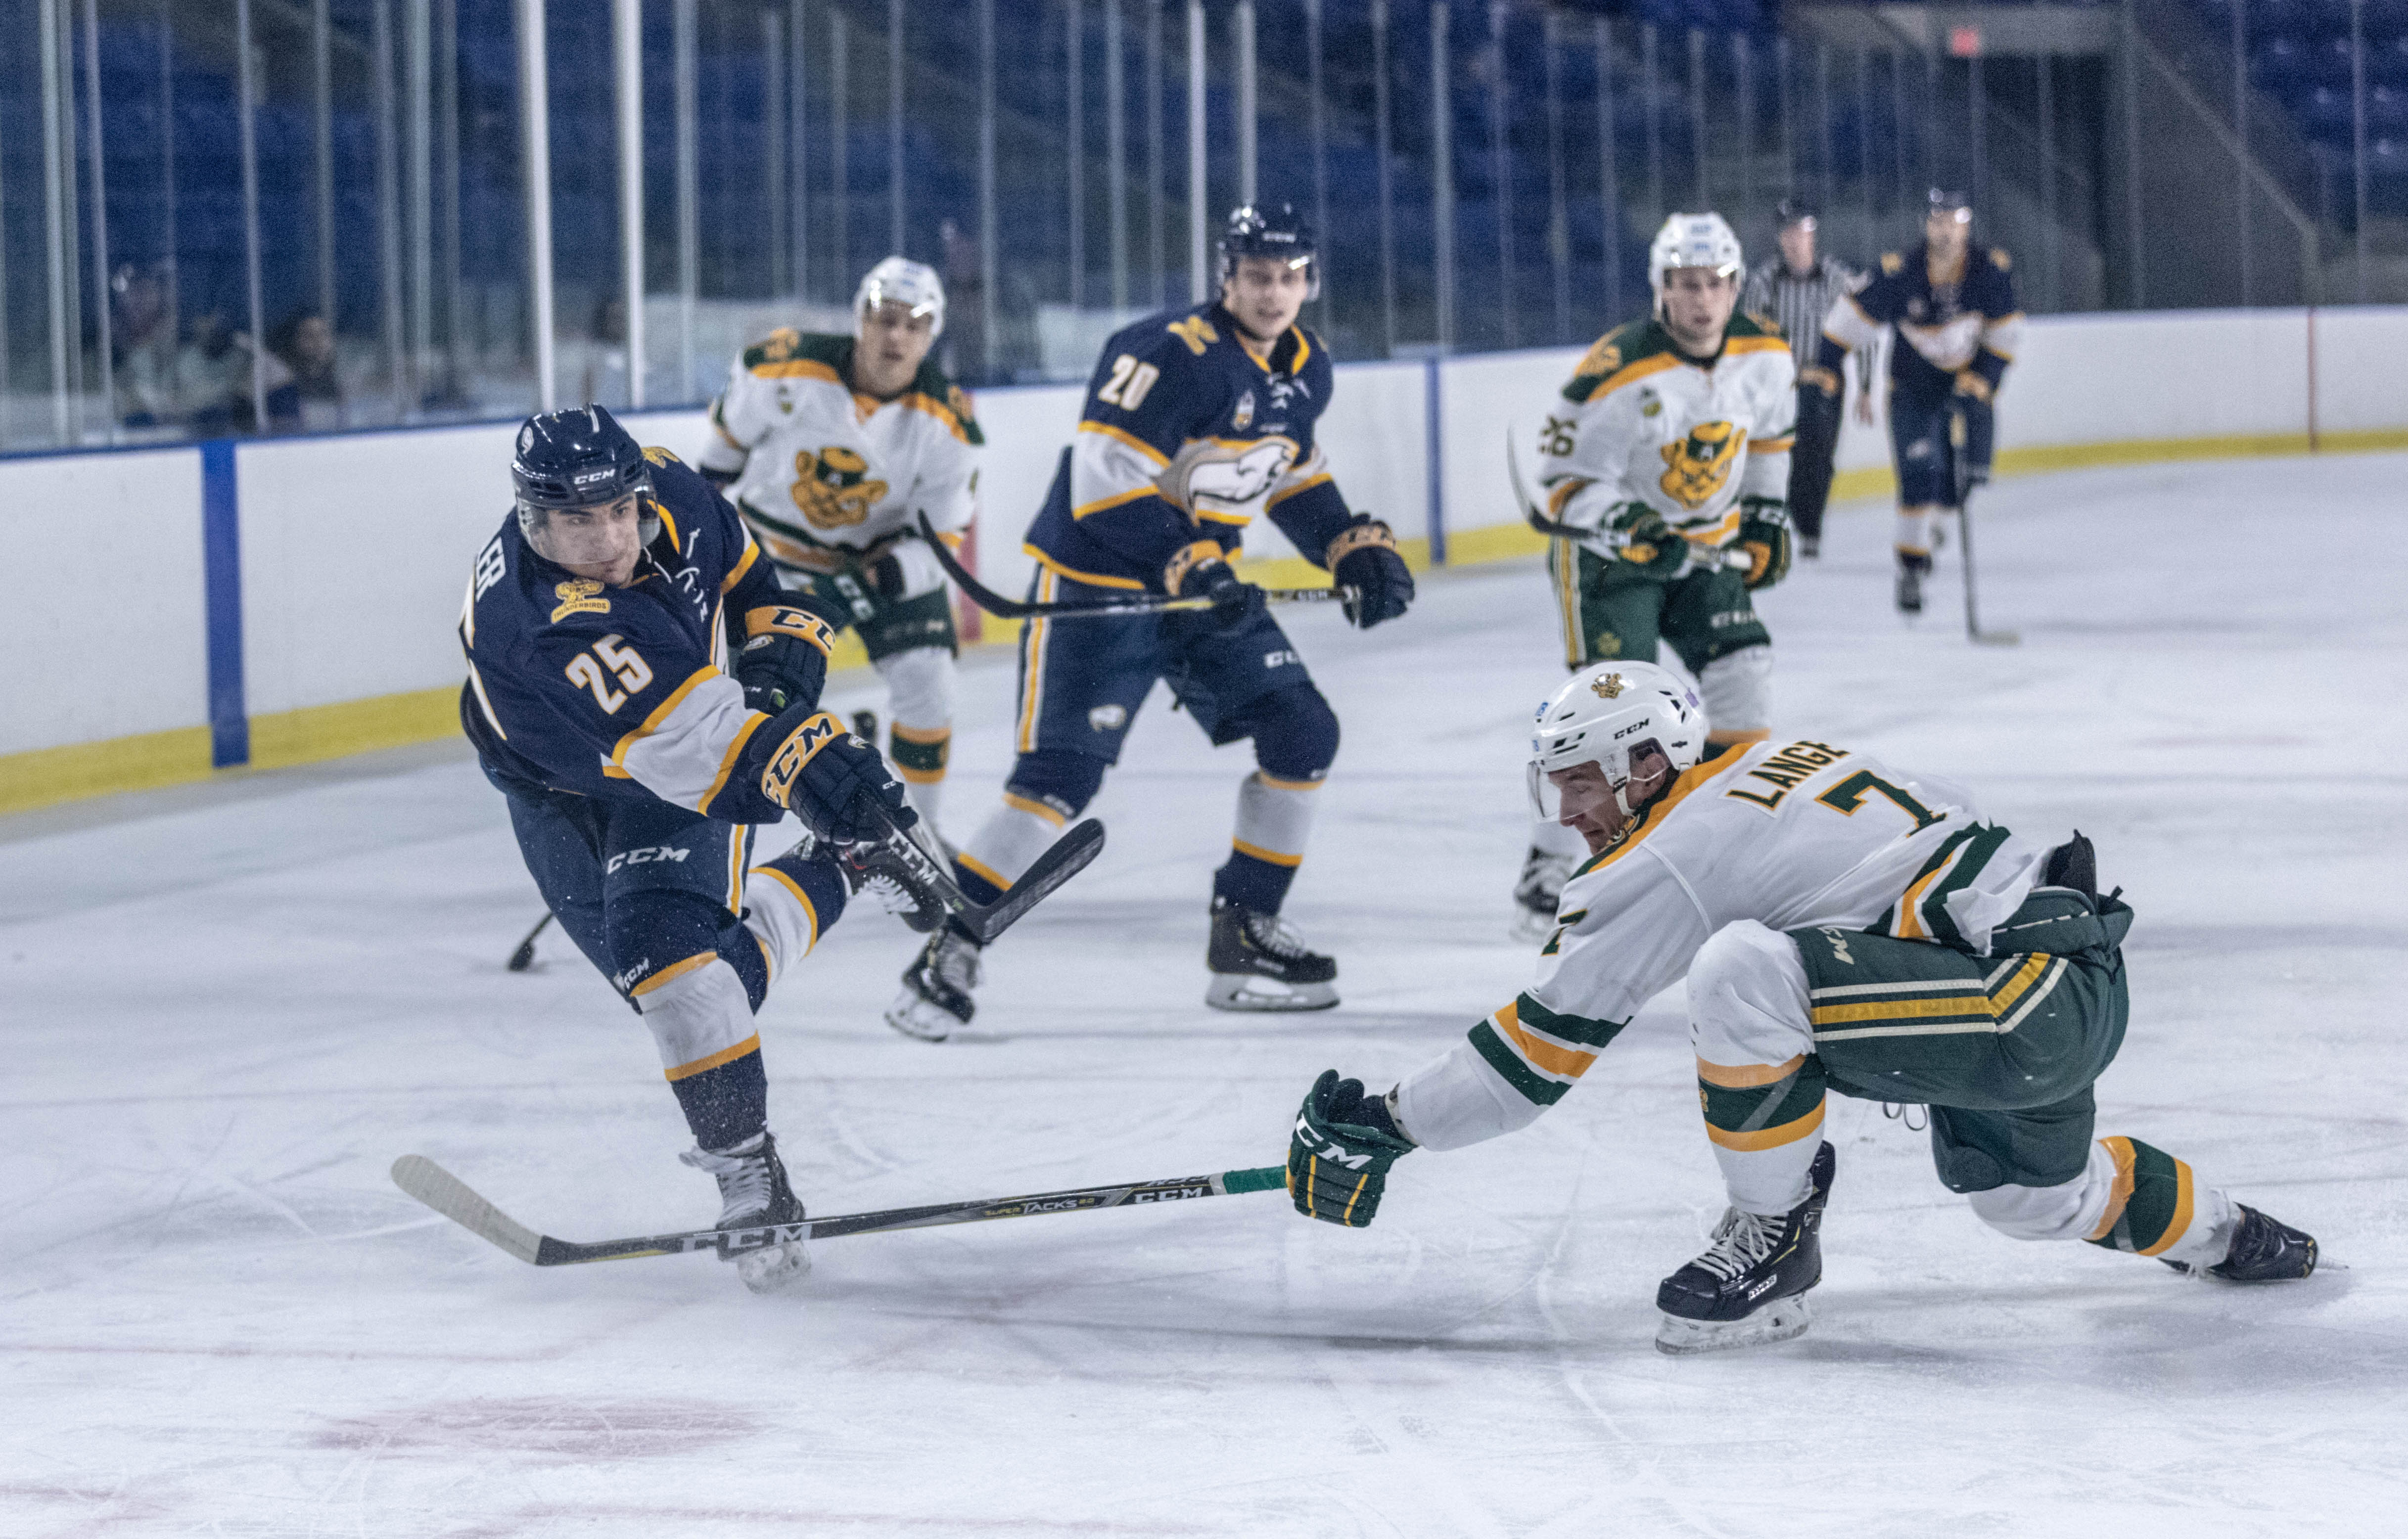 With the Vancouver Island University Mariners coming to town on Friday, the T-Birds will look to remain undefeated.